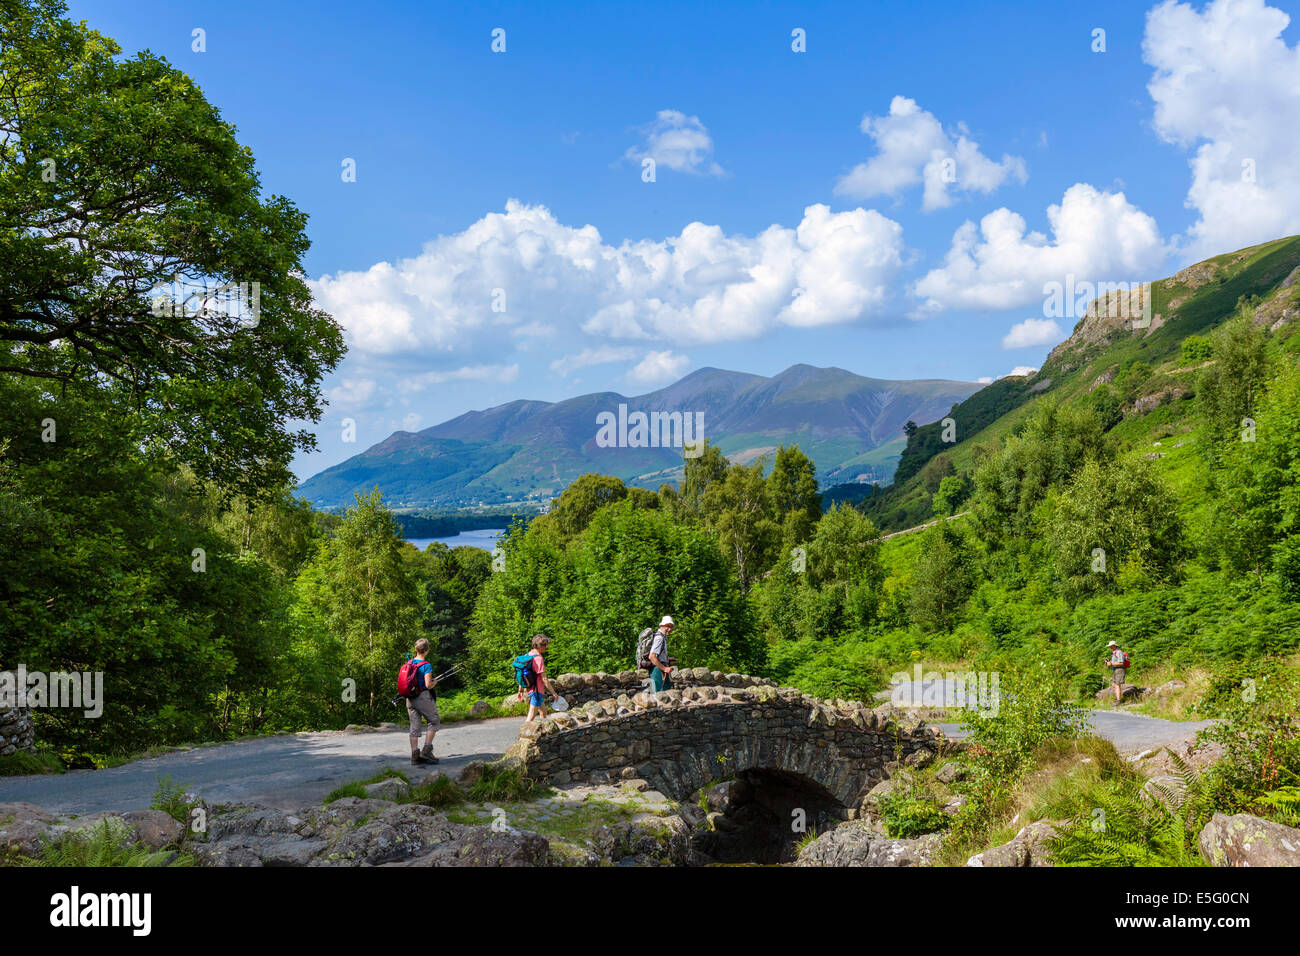 English Lake District. Walkers at Ashness Bridge with Skiddaw massif in the distance, Borrowdale, Lake District - Stock Image